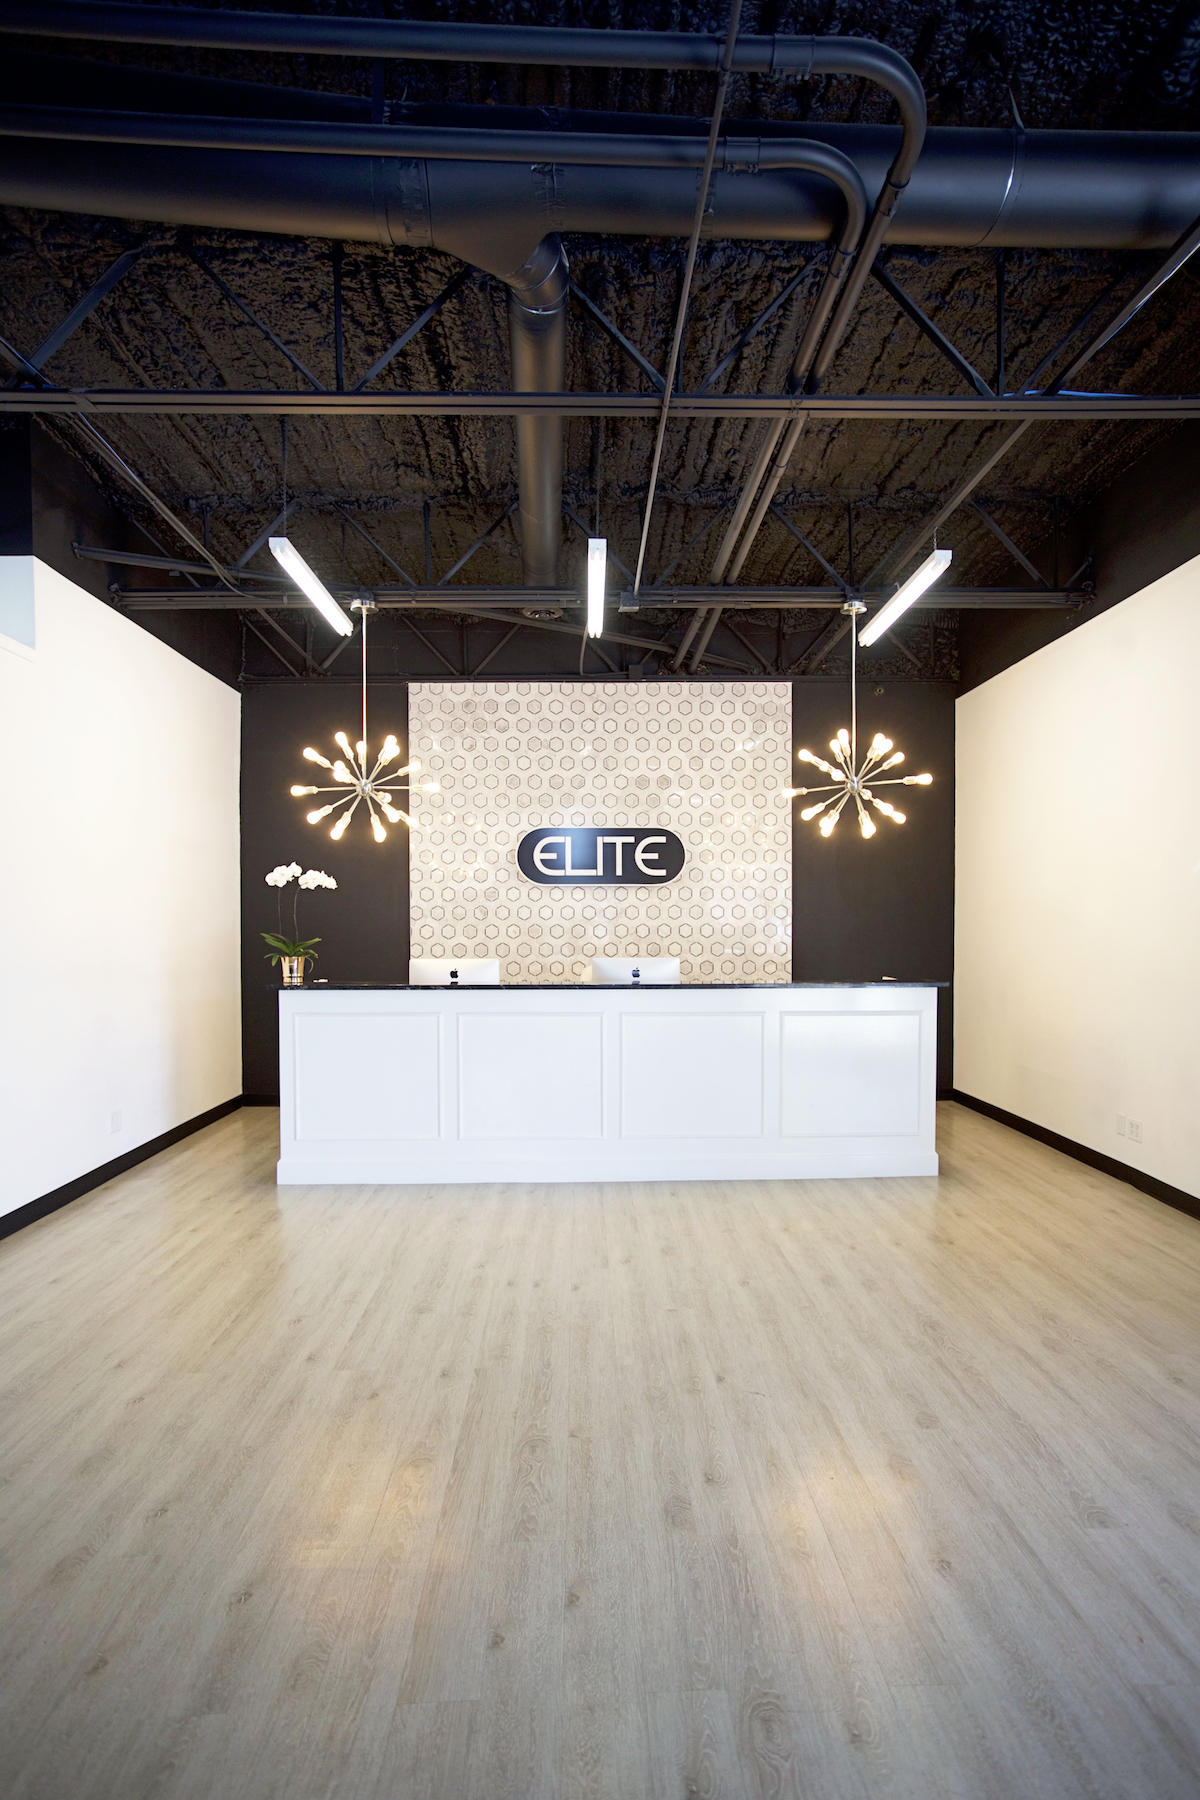 elite dance studio far back shot of the entire front desk, hexagon tile backsplash and sputnik chandeliers